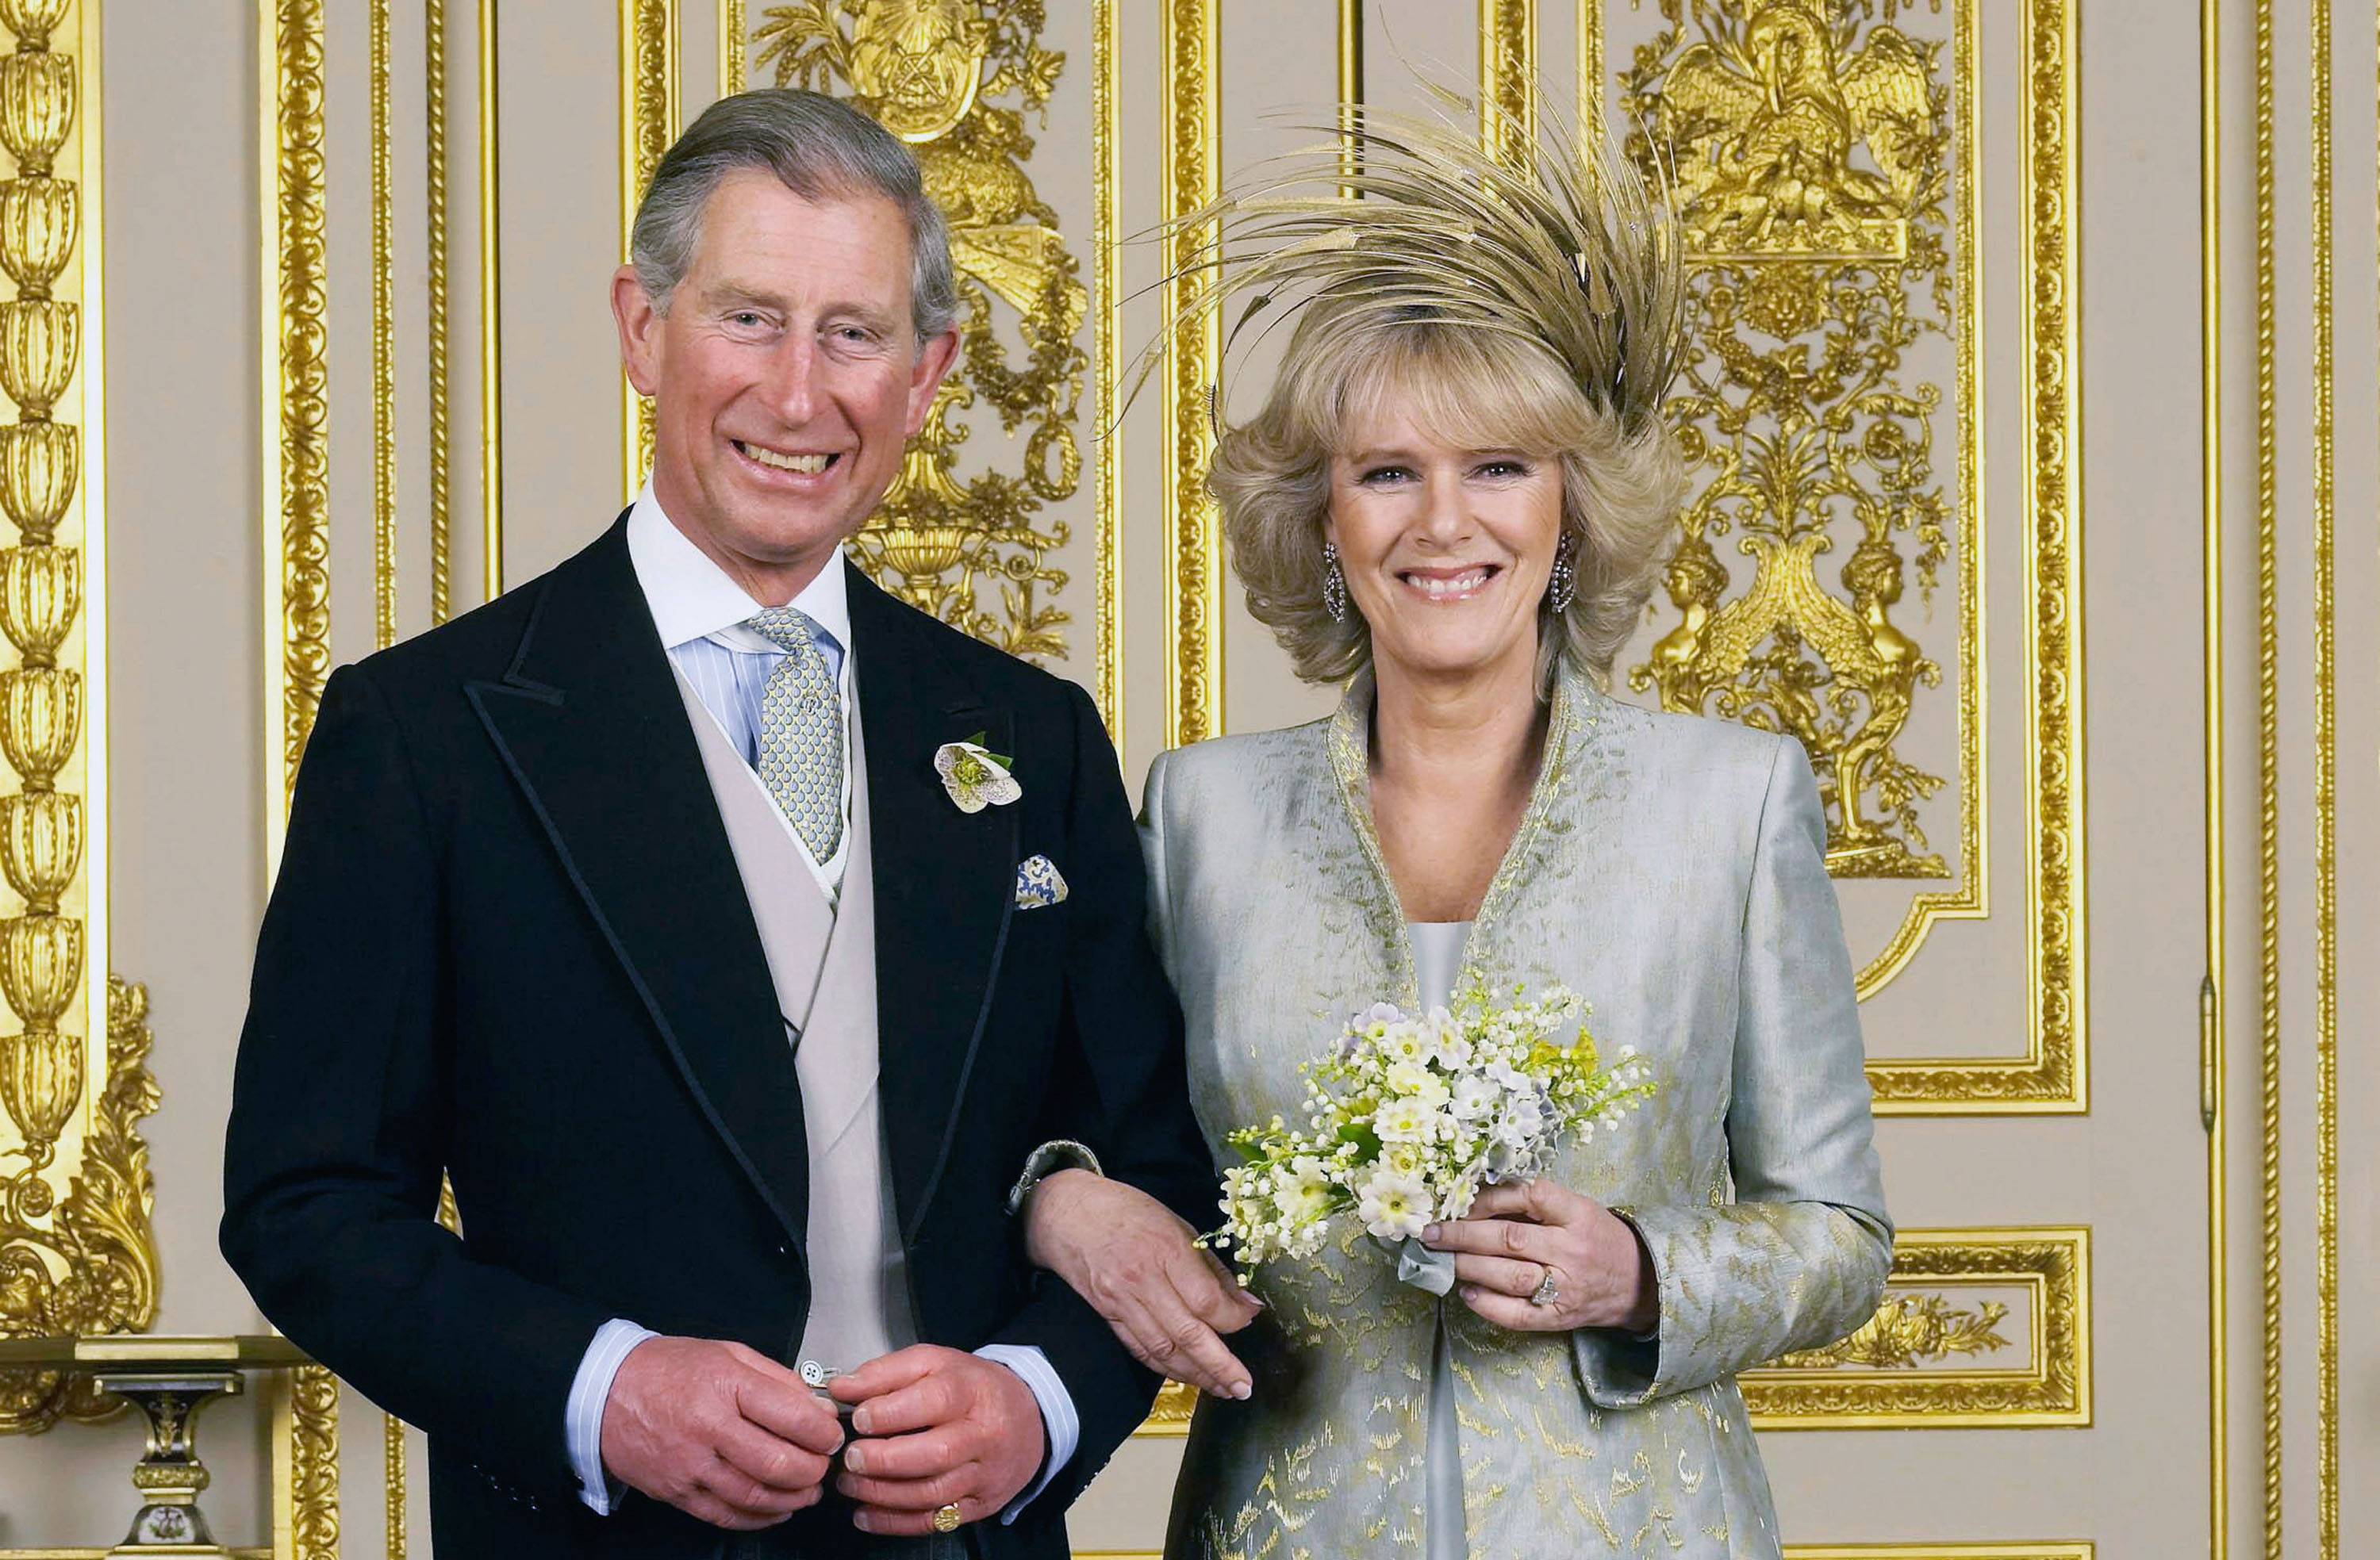 Prince Charles, a Prince of Wales, and his mother Camilla, a Duchess Of Cornwall, poise in a White Drawing Room during Windsor Castle for a Official Wedding sketch following their matrimony on Apr 9, 2005 in Windsor, England. Tim Graham/Getty Images